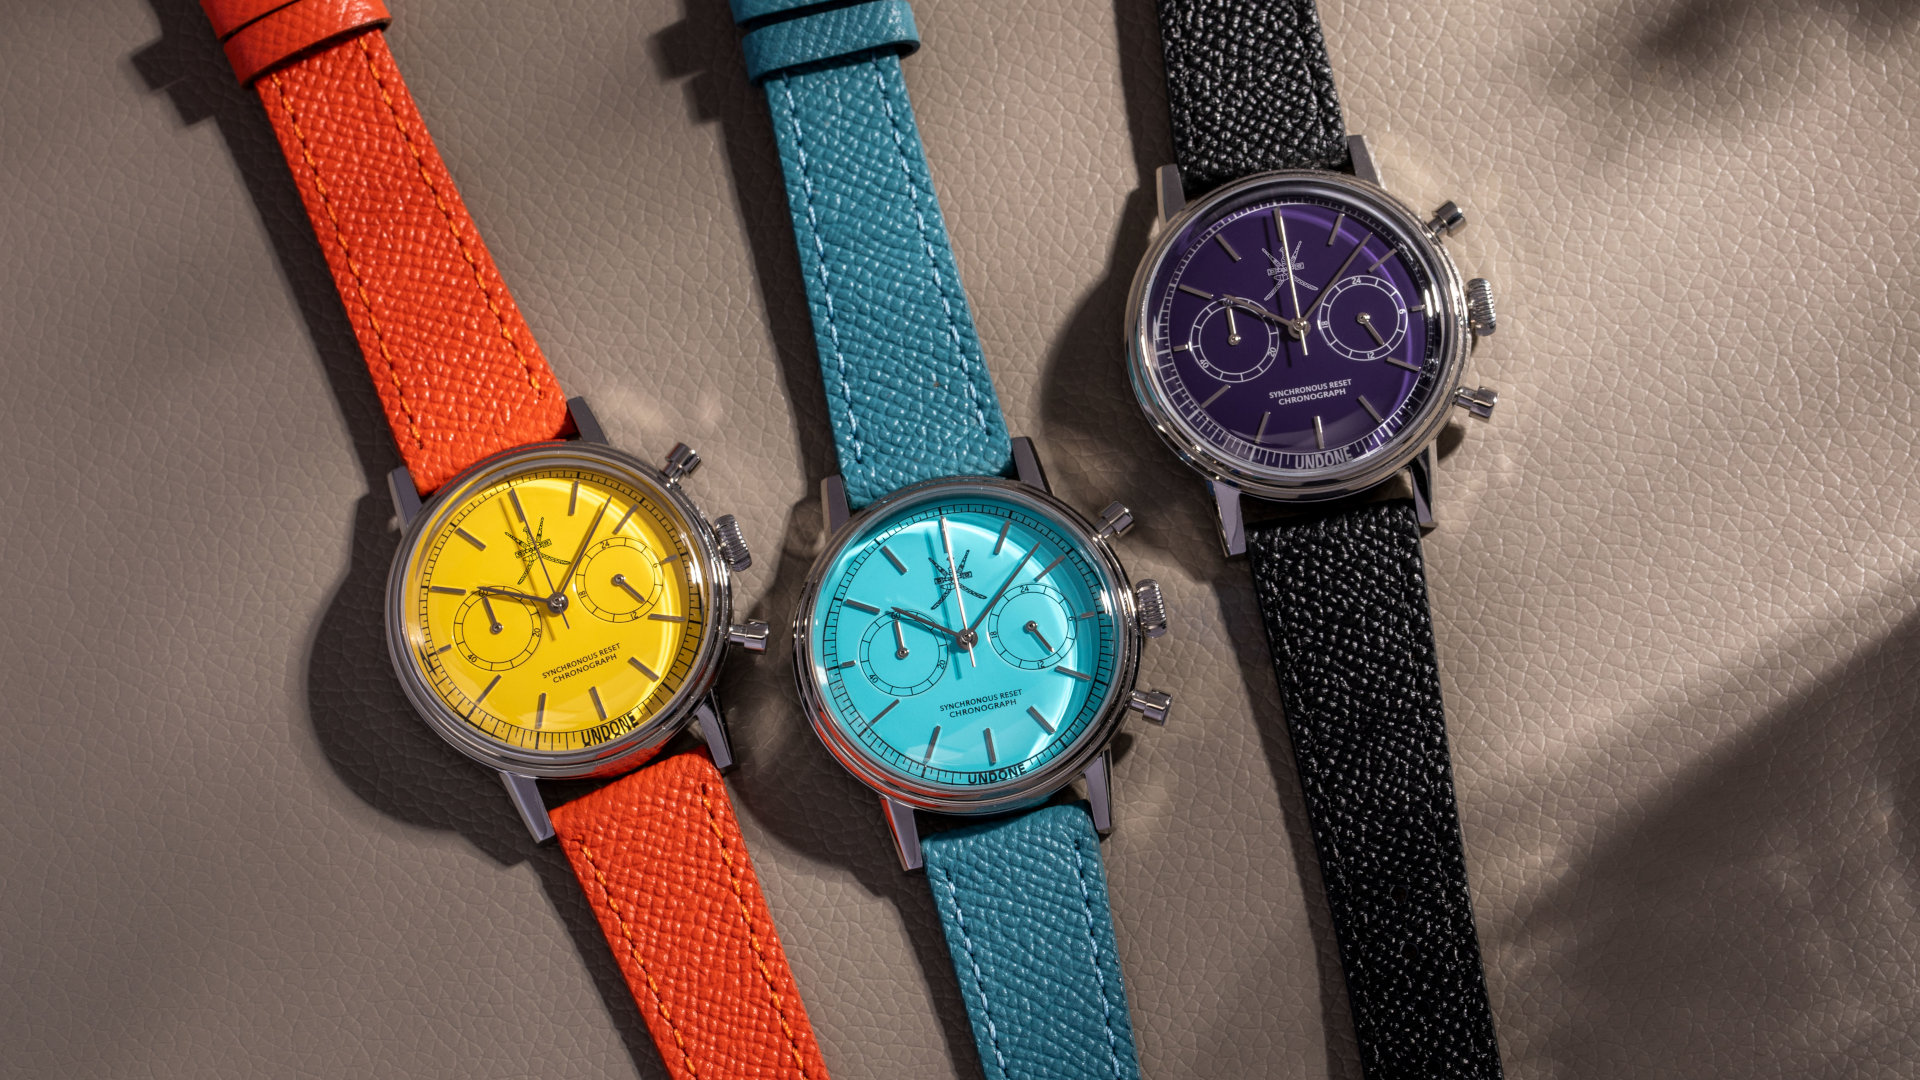 Undone Stellar Collection Offers Serious Vintage Watch Street Cred But Without The Six-Figure Price Tag